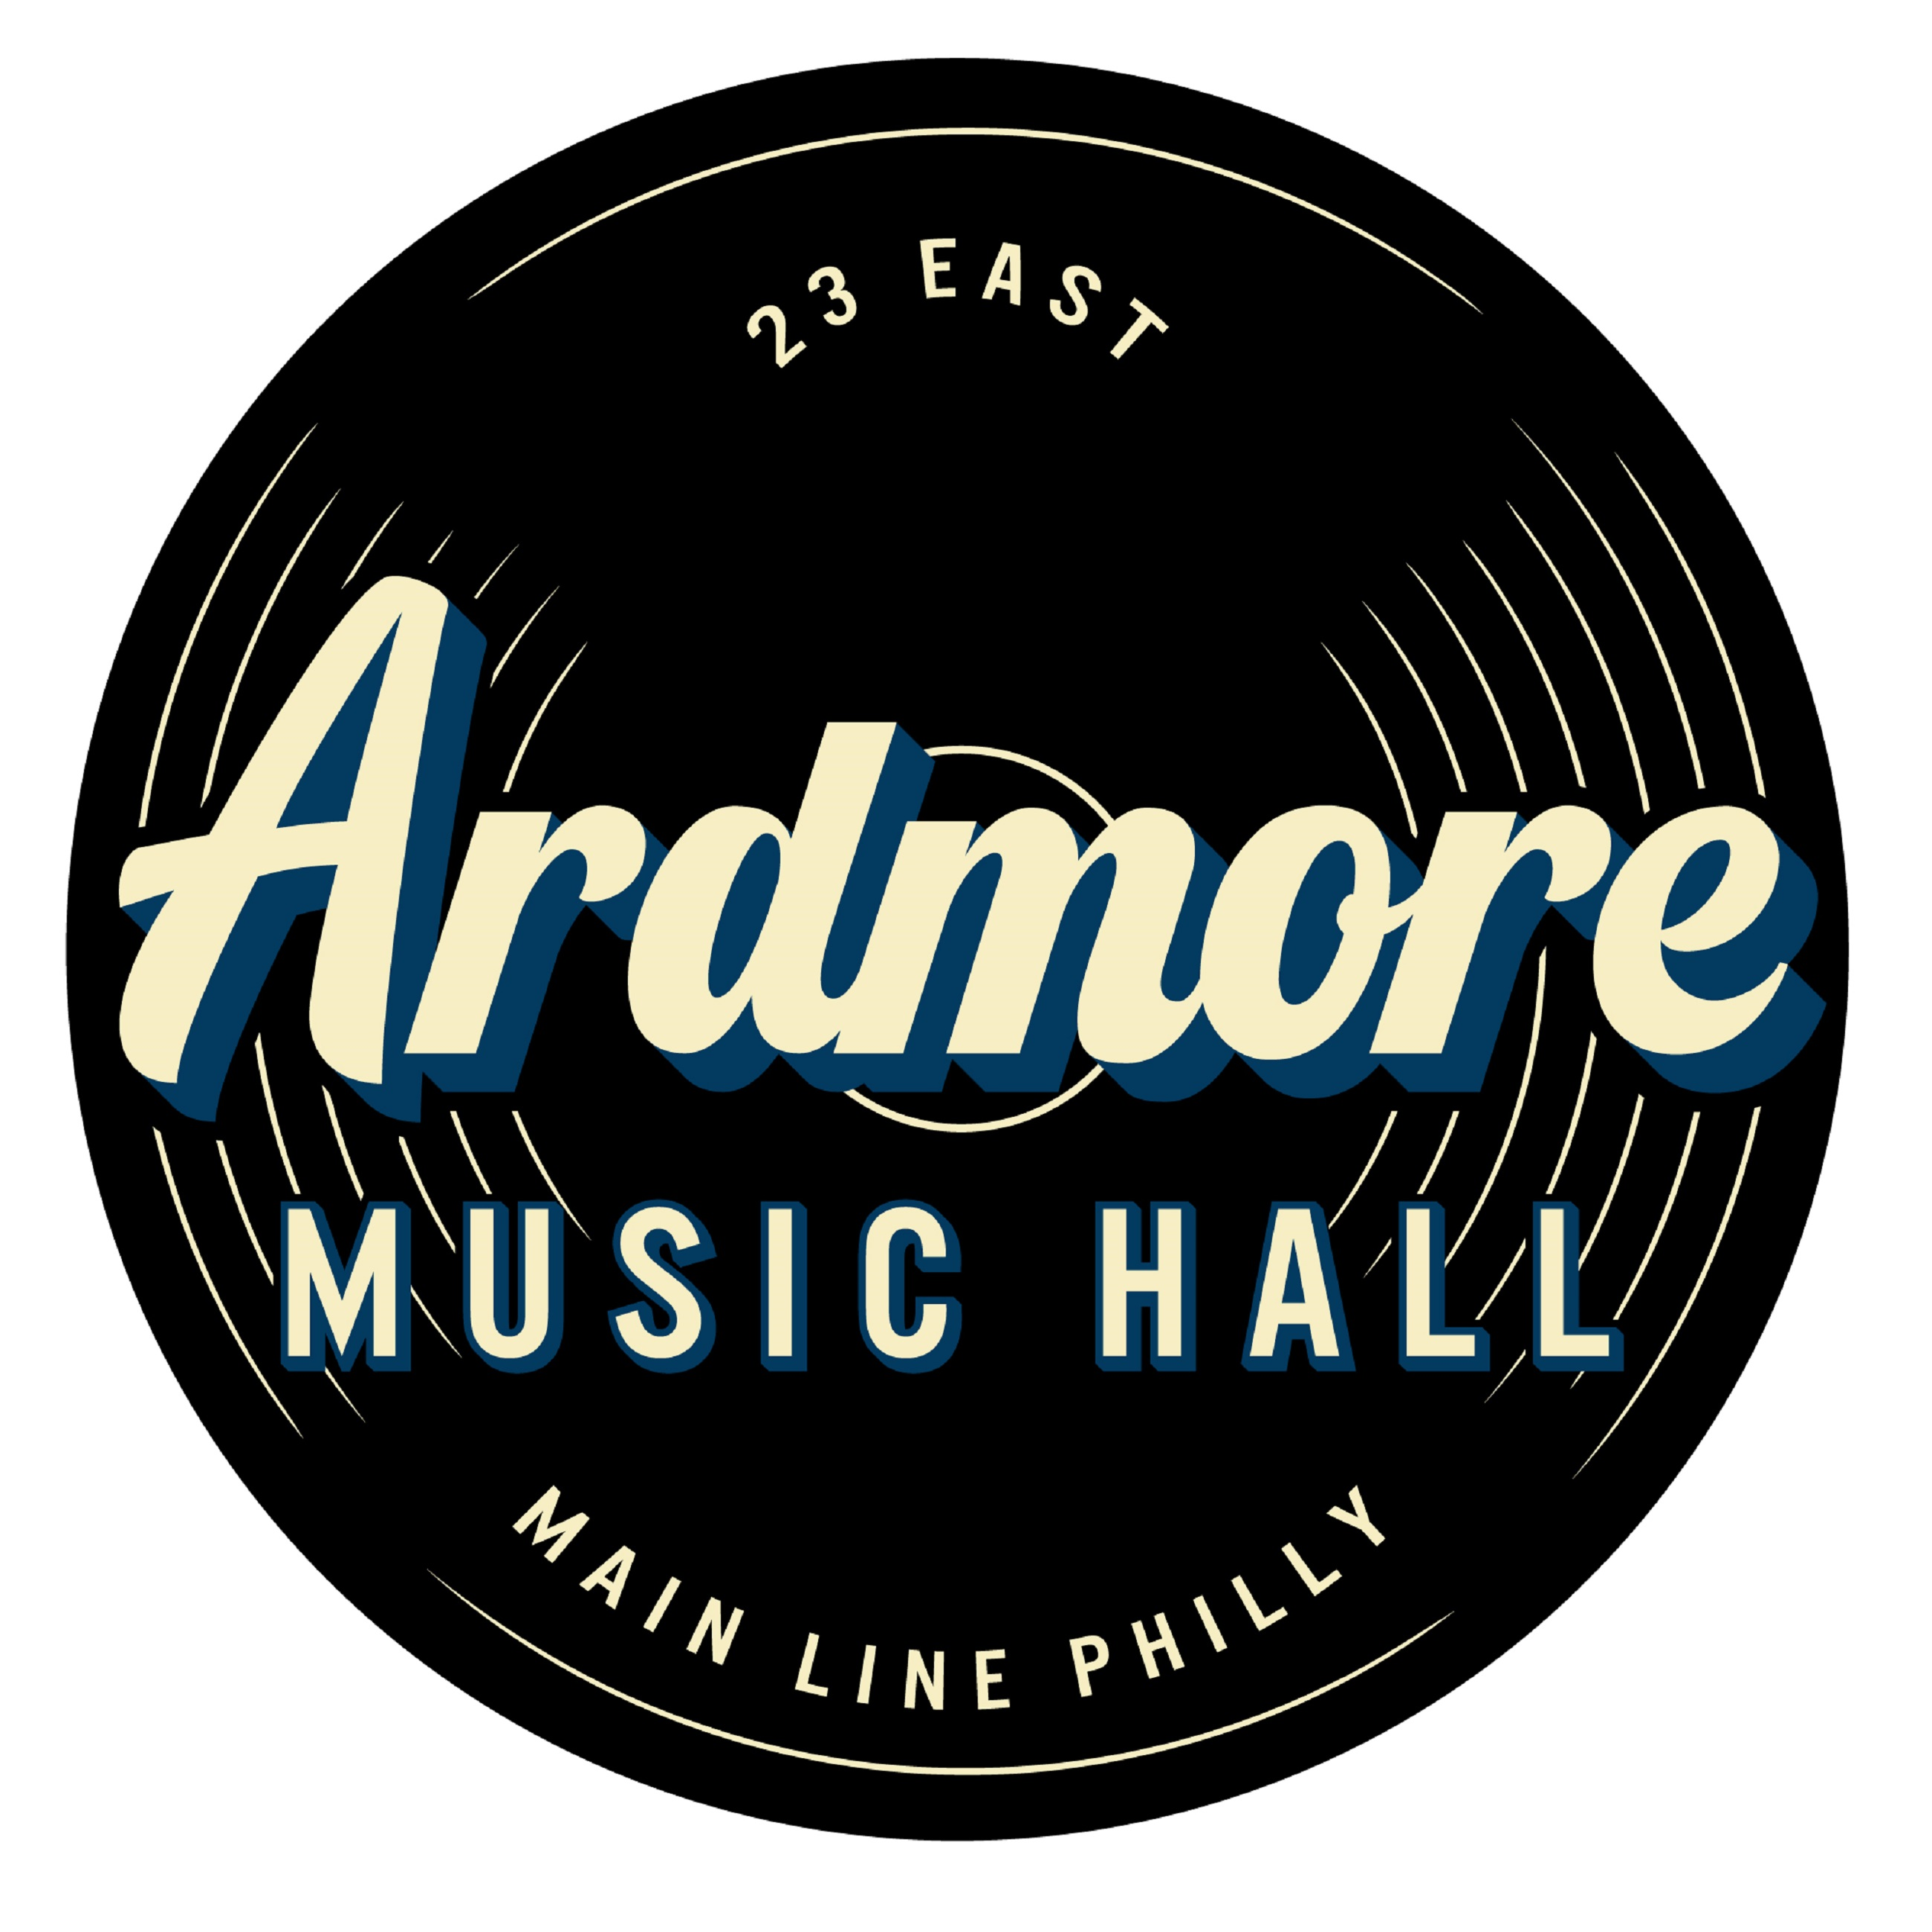 Ardmore Music Hall Announces Updated Brand Identity with Redesigned Logo & New Merch Store